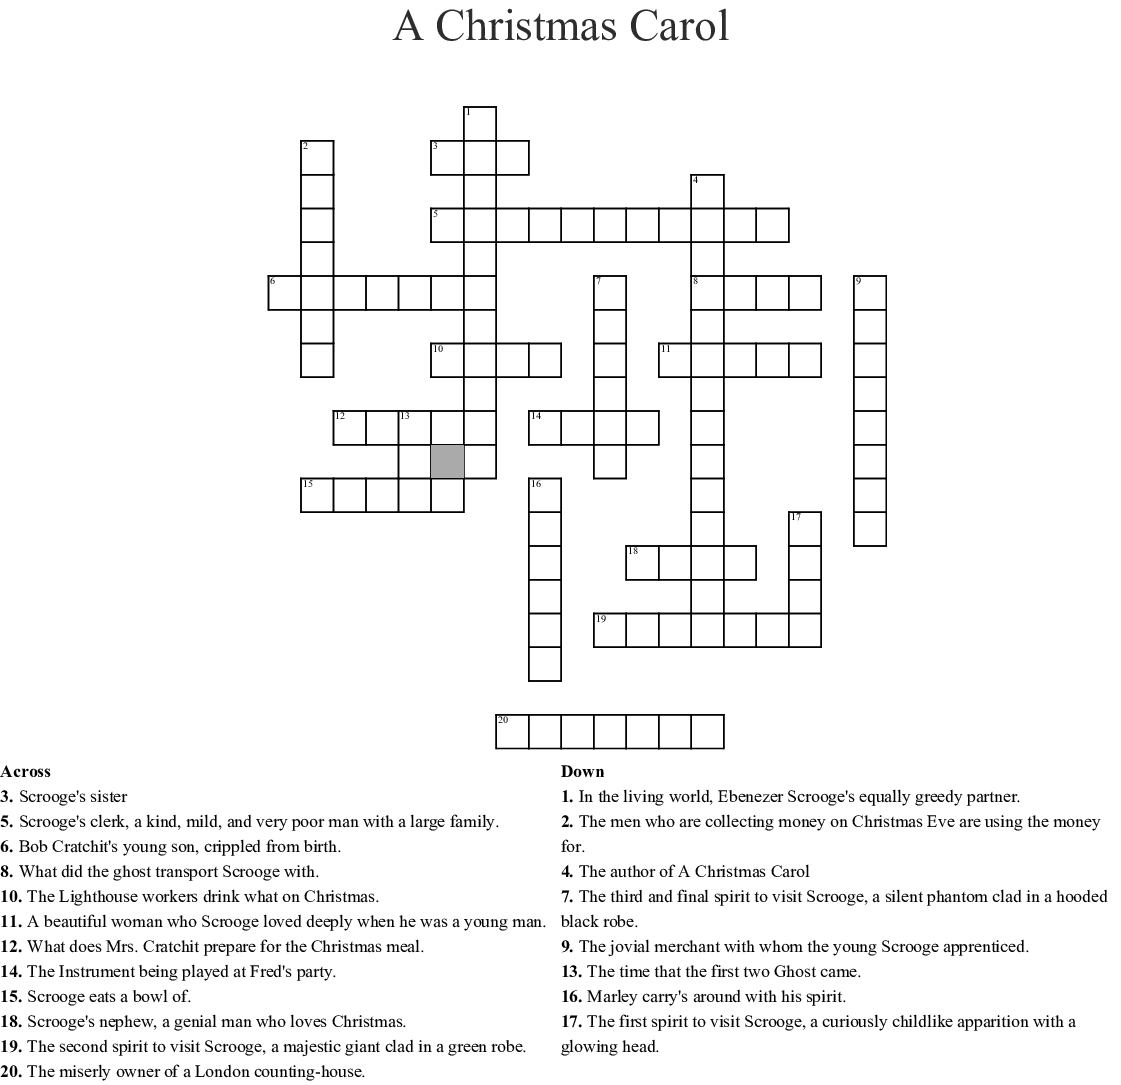 A Christmas Carol Crossword - Wordmint - A Christmas Carol Crossword Printable